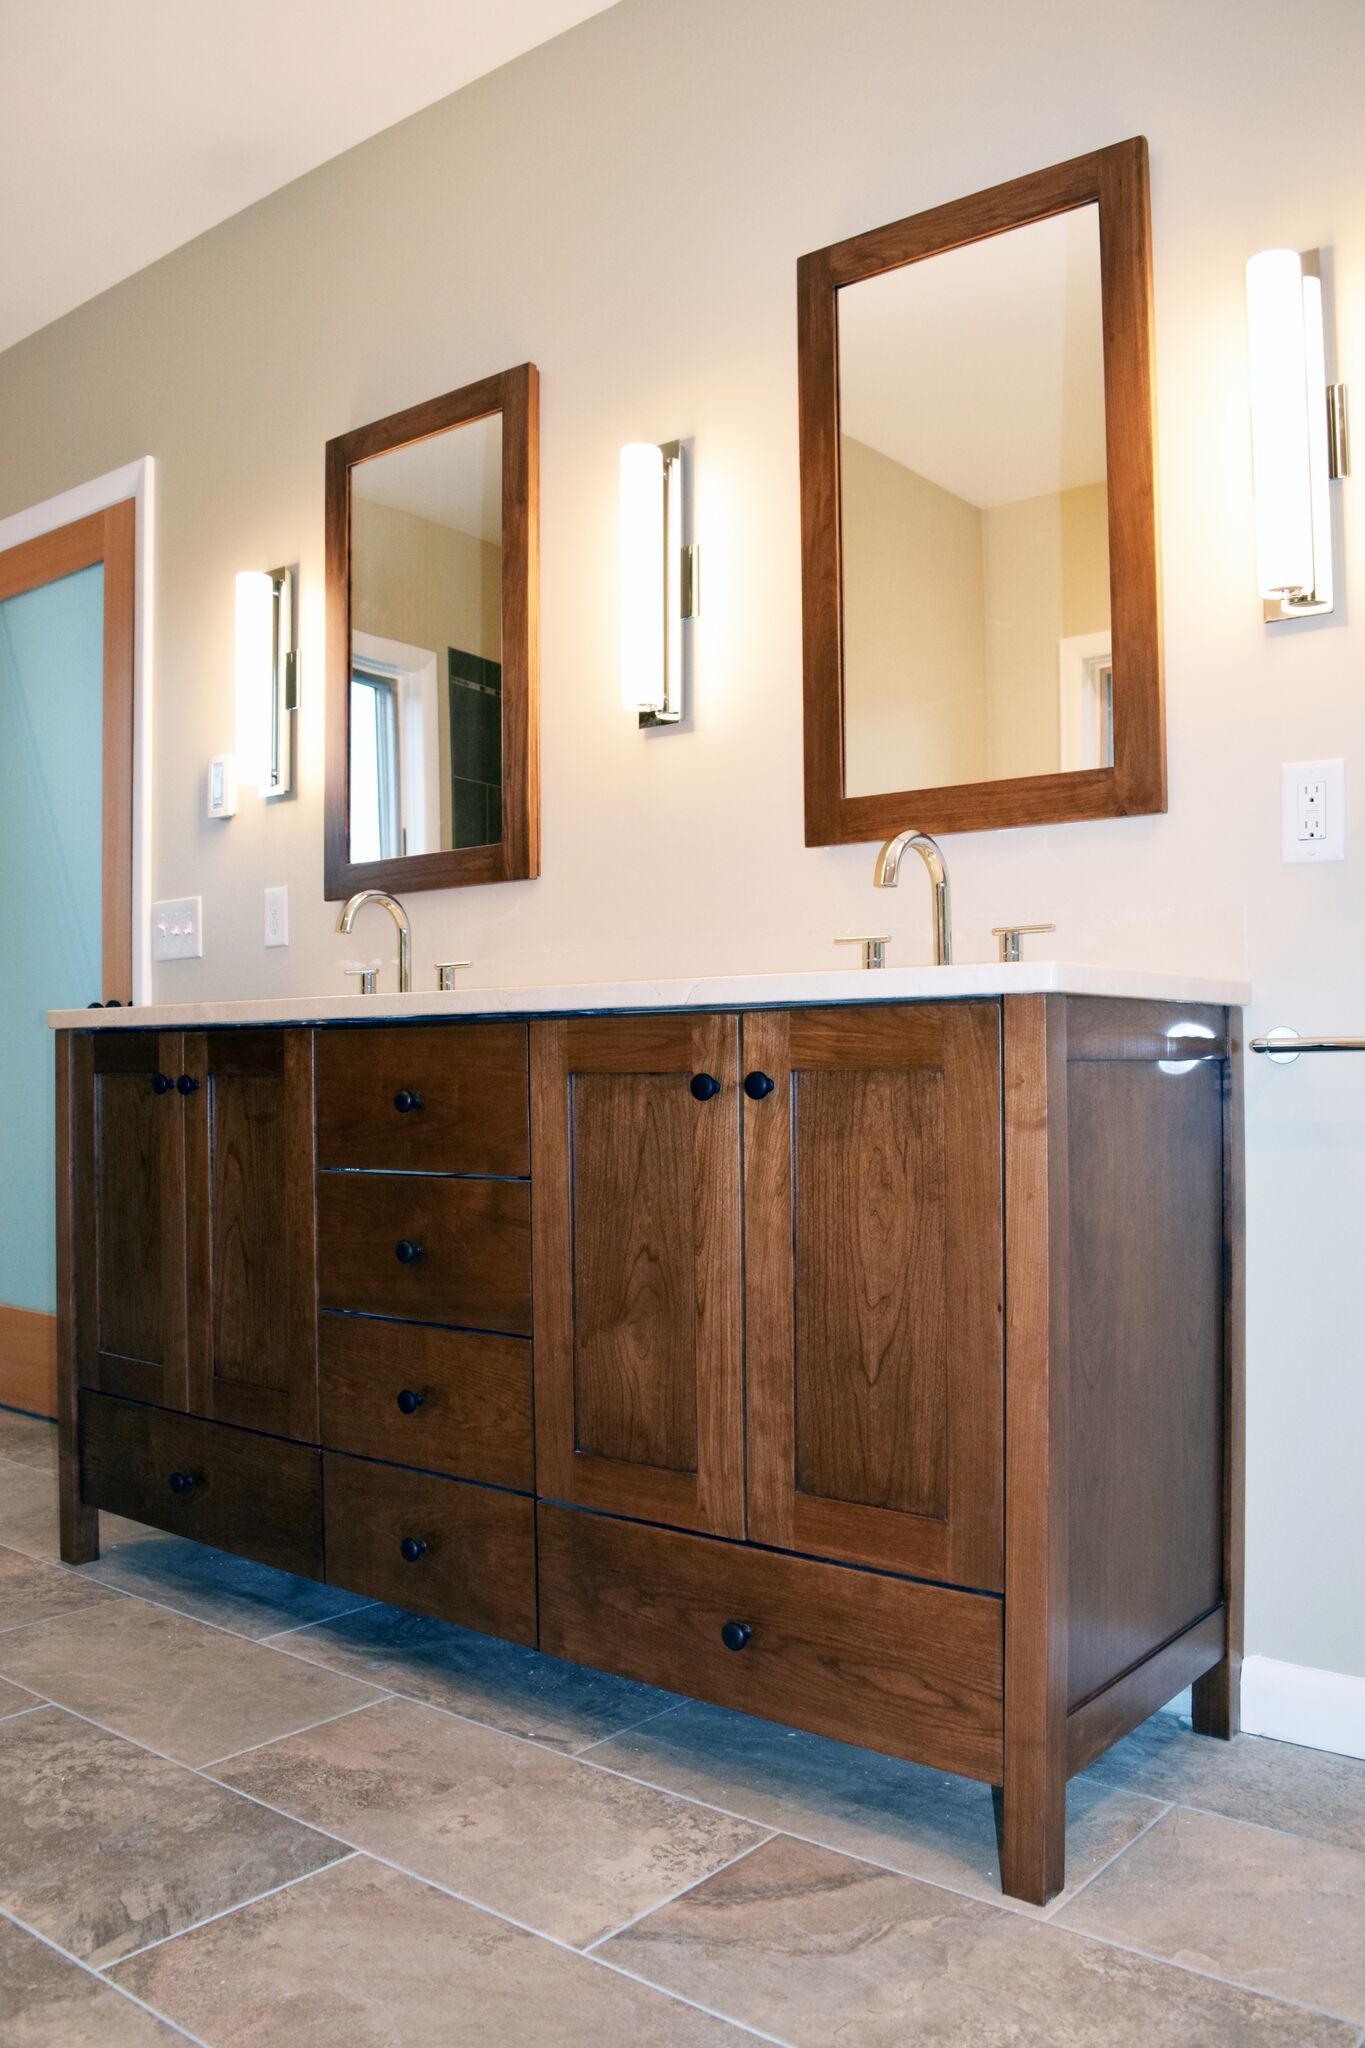 Photo of custom bathroom design. Shaker style and flush inset custom cabinets. Pull-out drawers with decorative handles. Custom cherry cabinetry. Ideas for custom cabinets and vanity designs, remodels, and renovations.